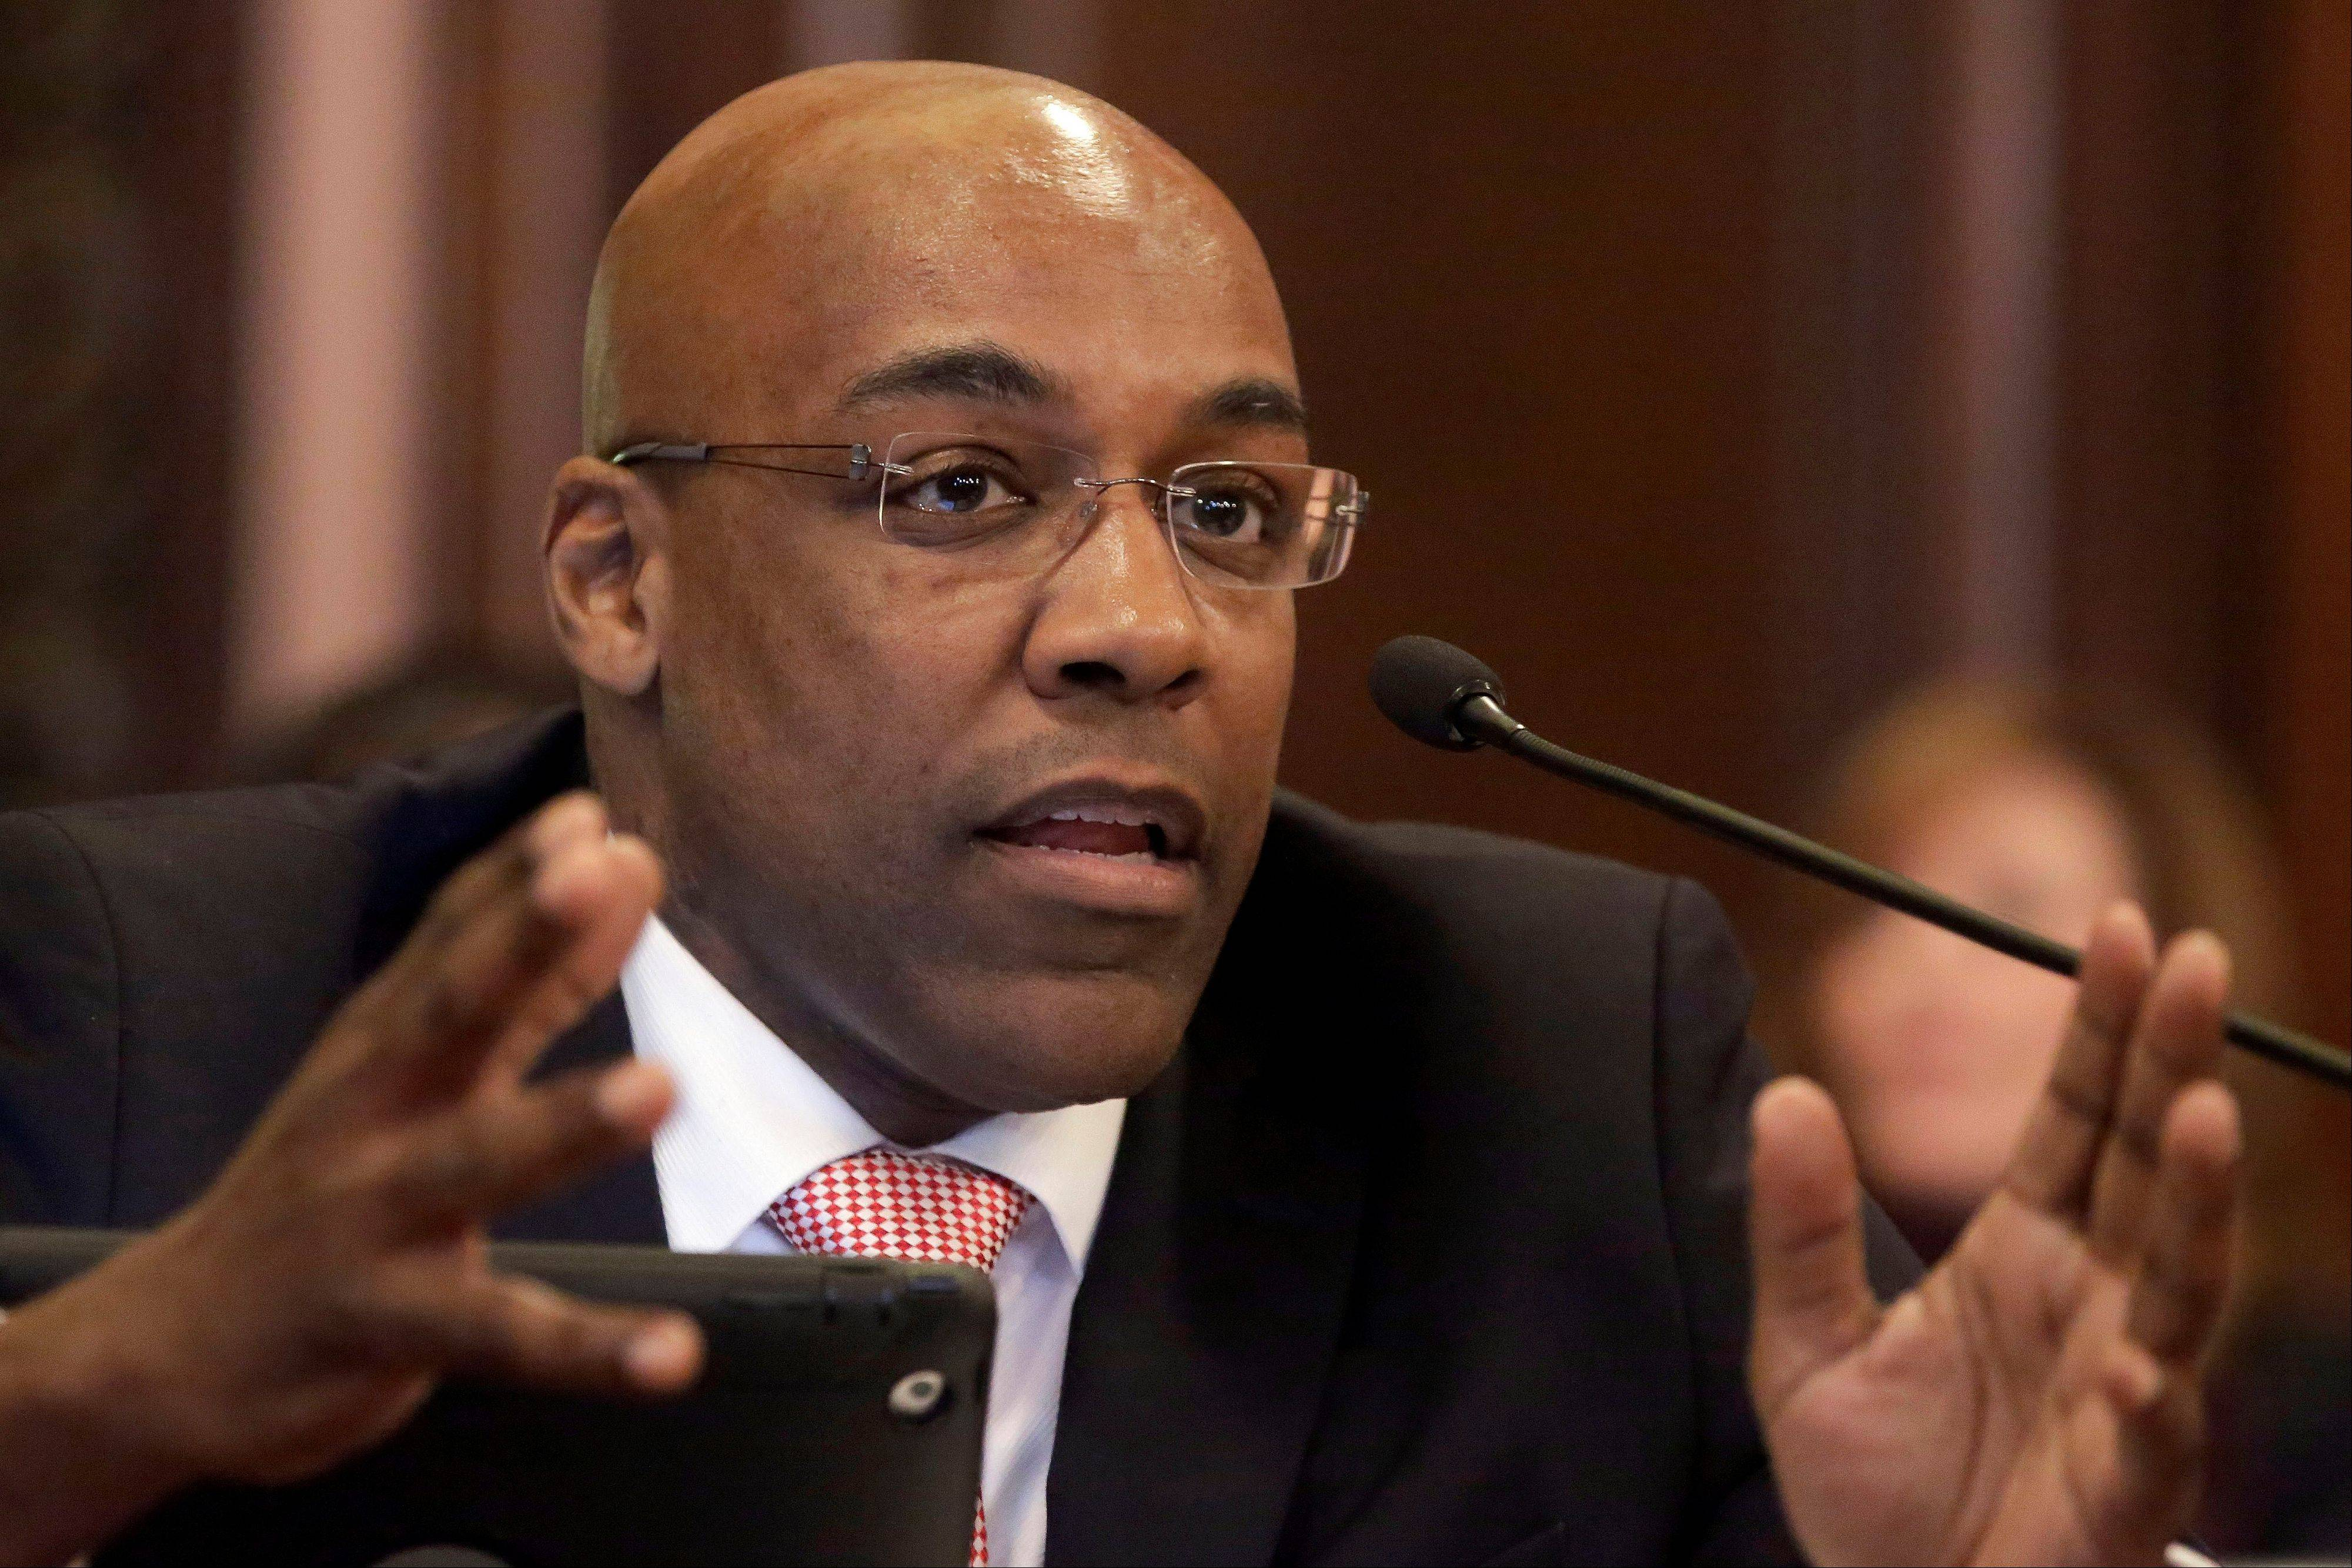 State Sen. Kwame Raoul, a Chicago Democrat, will discuss Illinois' fiscal crisis during a Nov. 18 appearance at Elmhurst College.